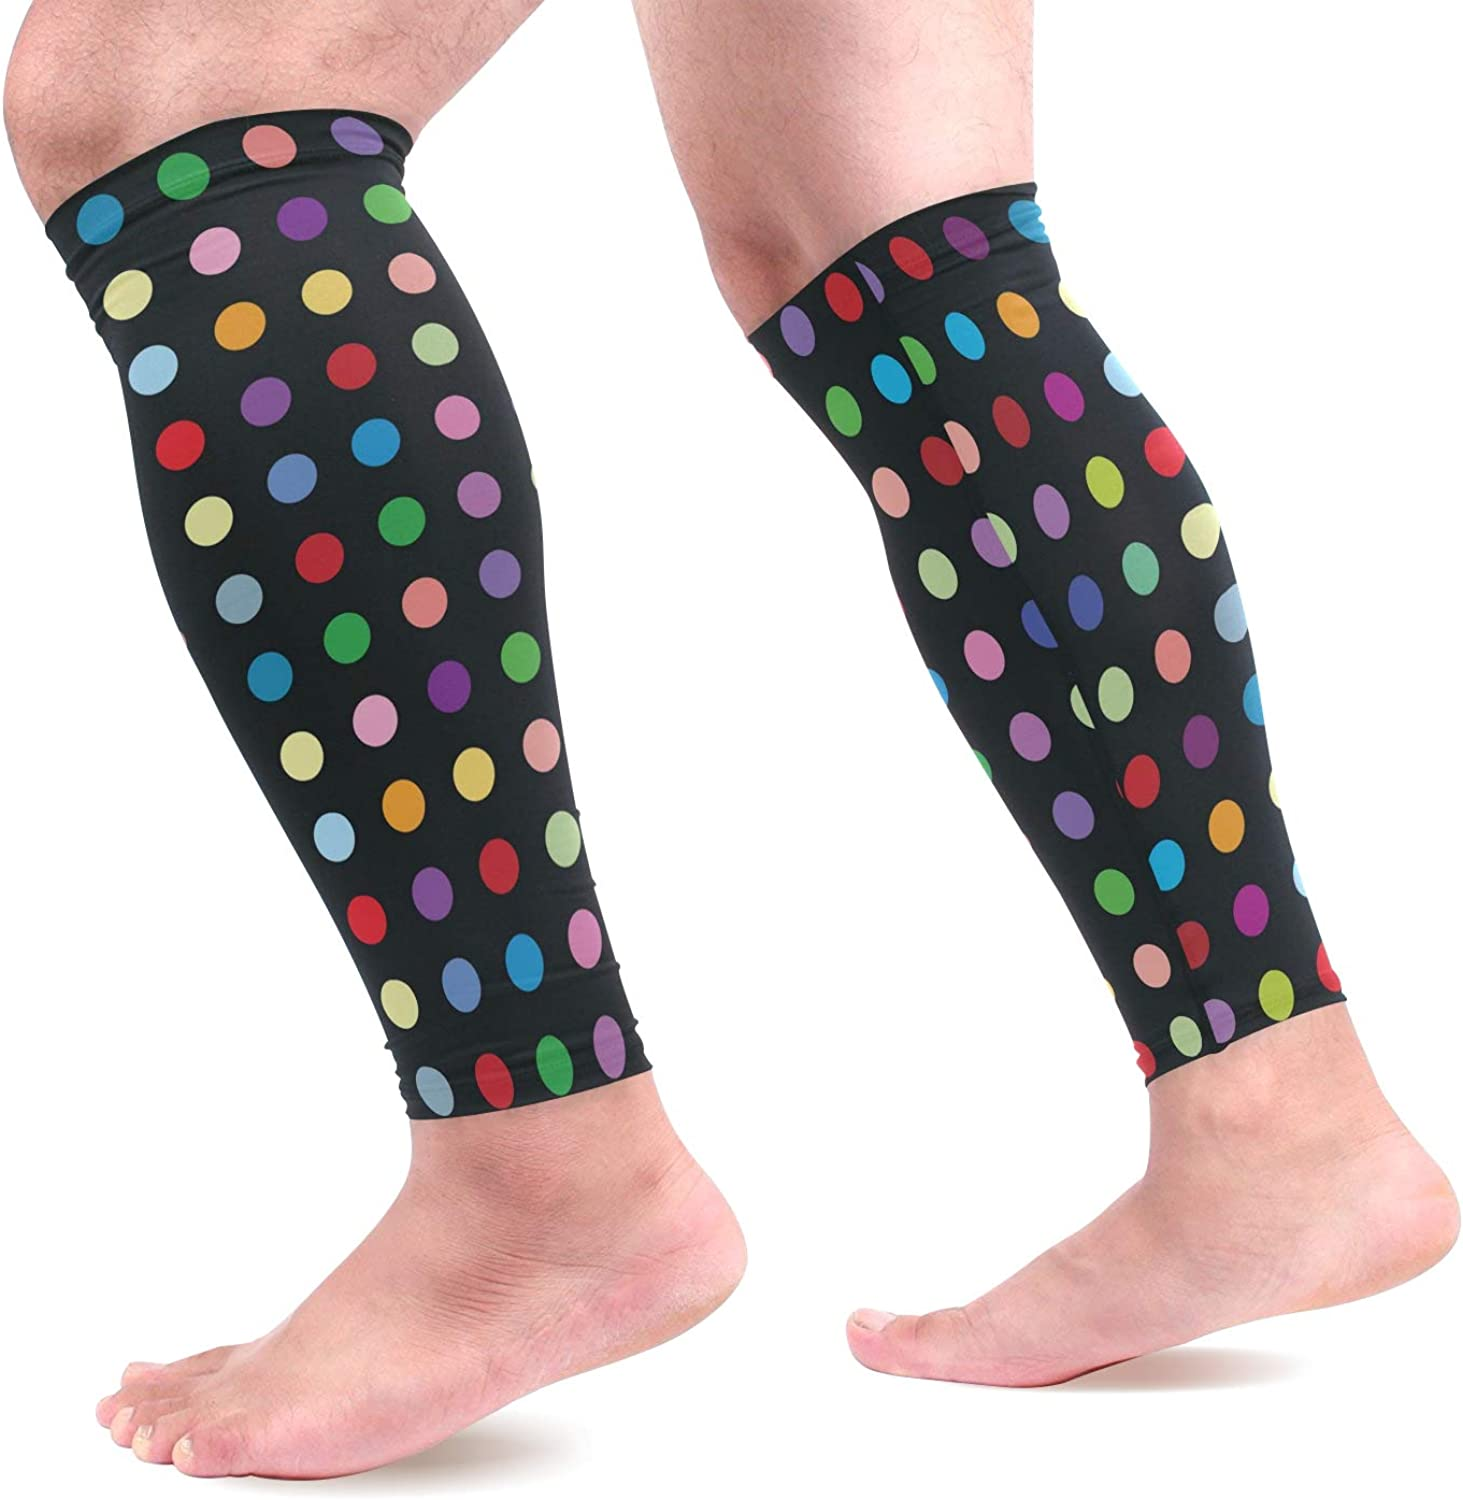 visesunny Cool Polkadots Pattern Sports Calf Support Sleeves for Muscle Pain Relief, Improved Circulation Compression Effective Support for Running, Jogging,Workout, Walking & Recovery(1 Pair)